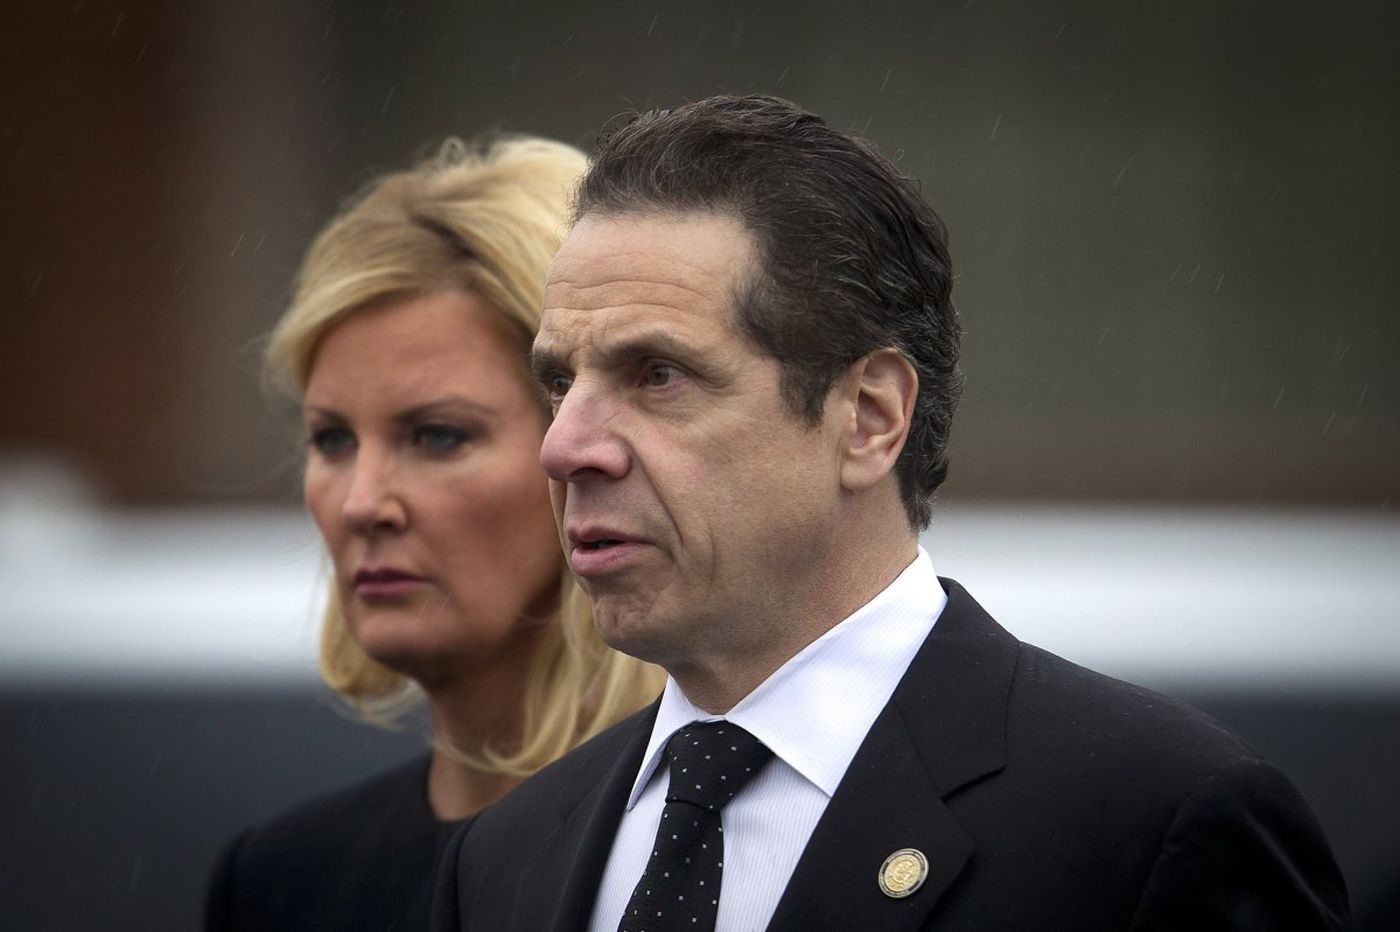 Andrew Cuomo S Marriage To Kerry Kennedy Was Doomed Earlier Than Known Reveals Book In 2020 Andrew Cuomo Kennedy Marriage